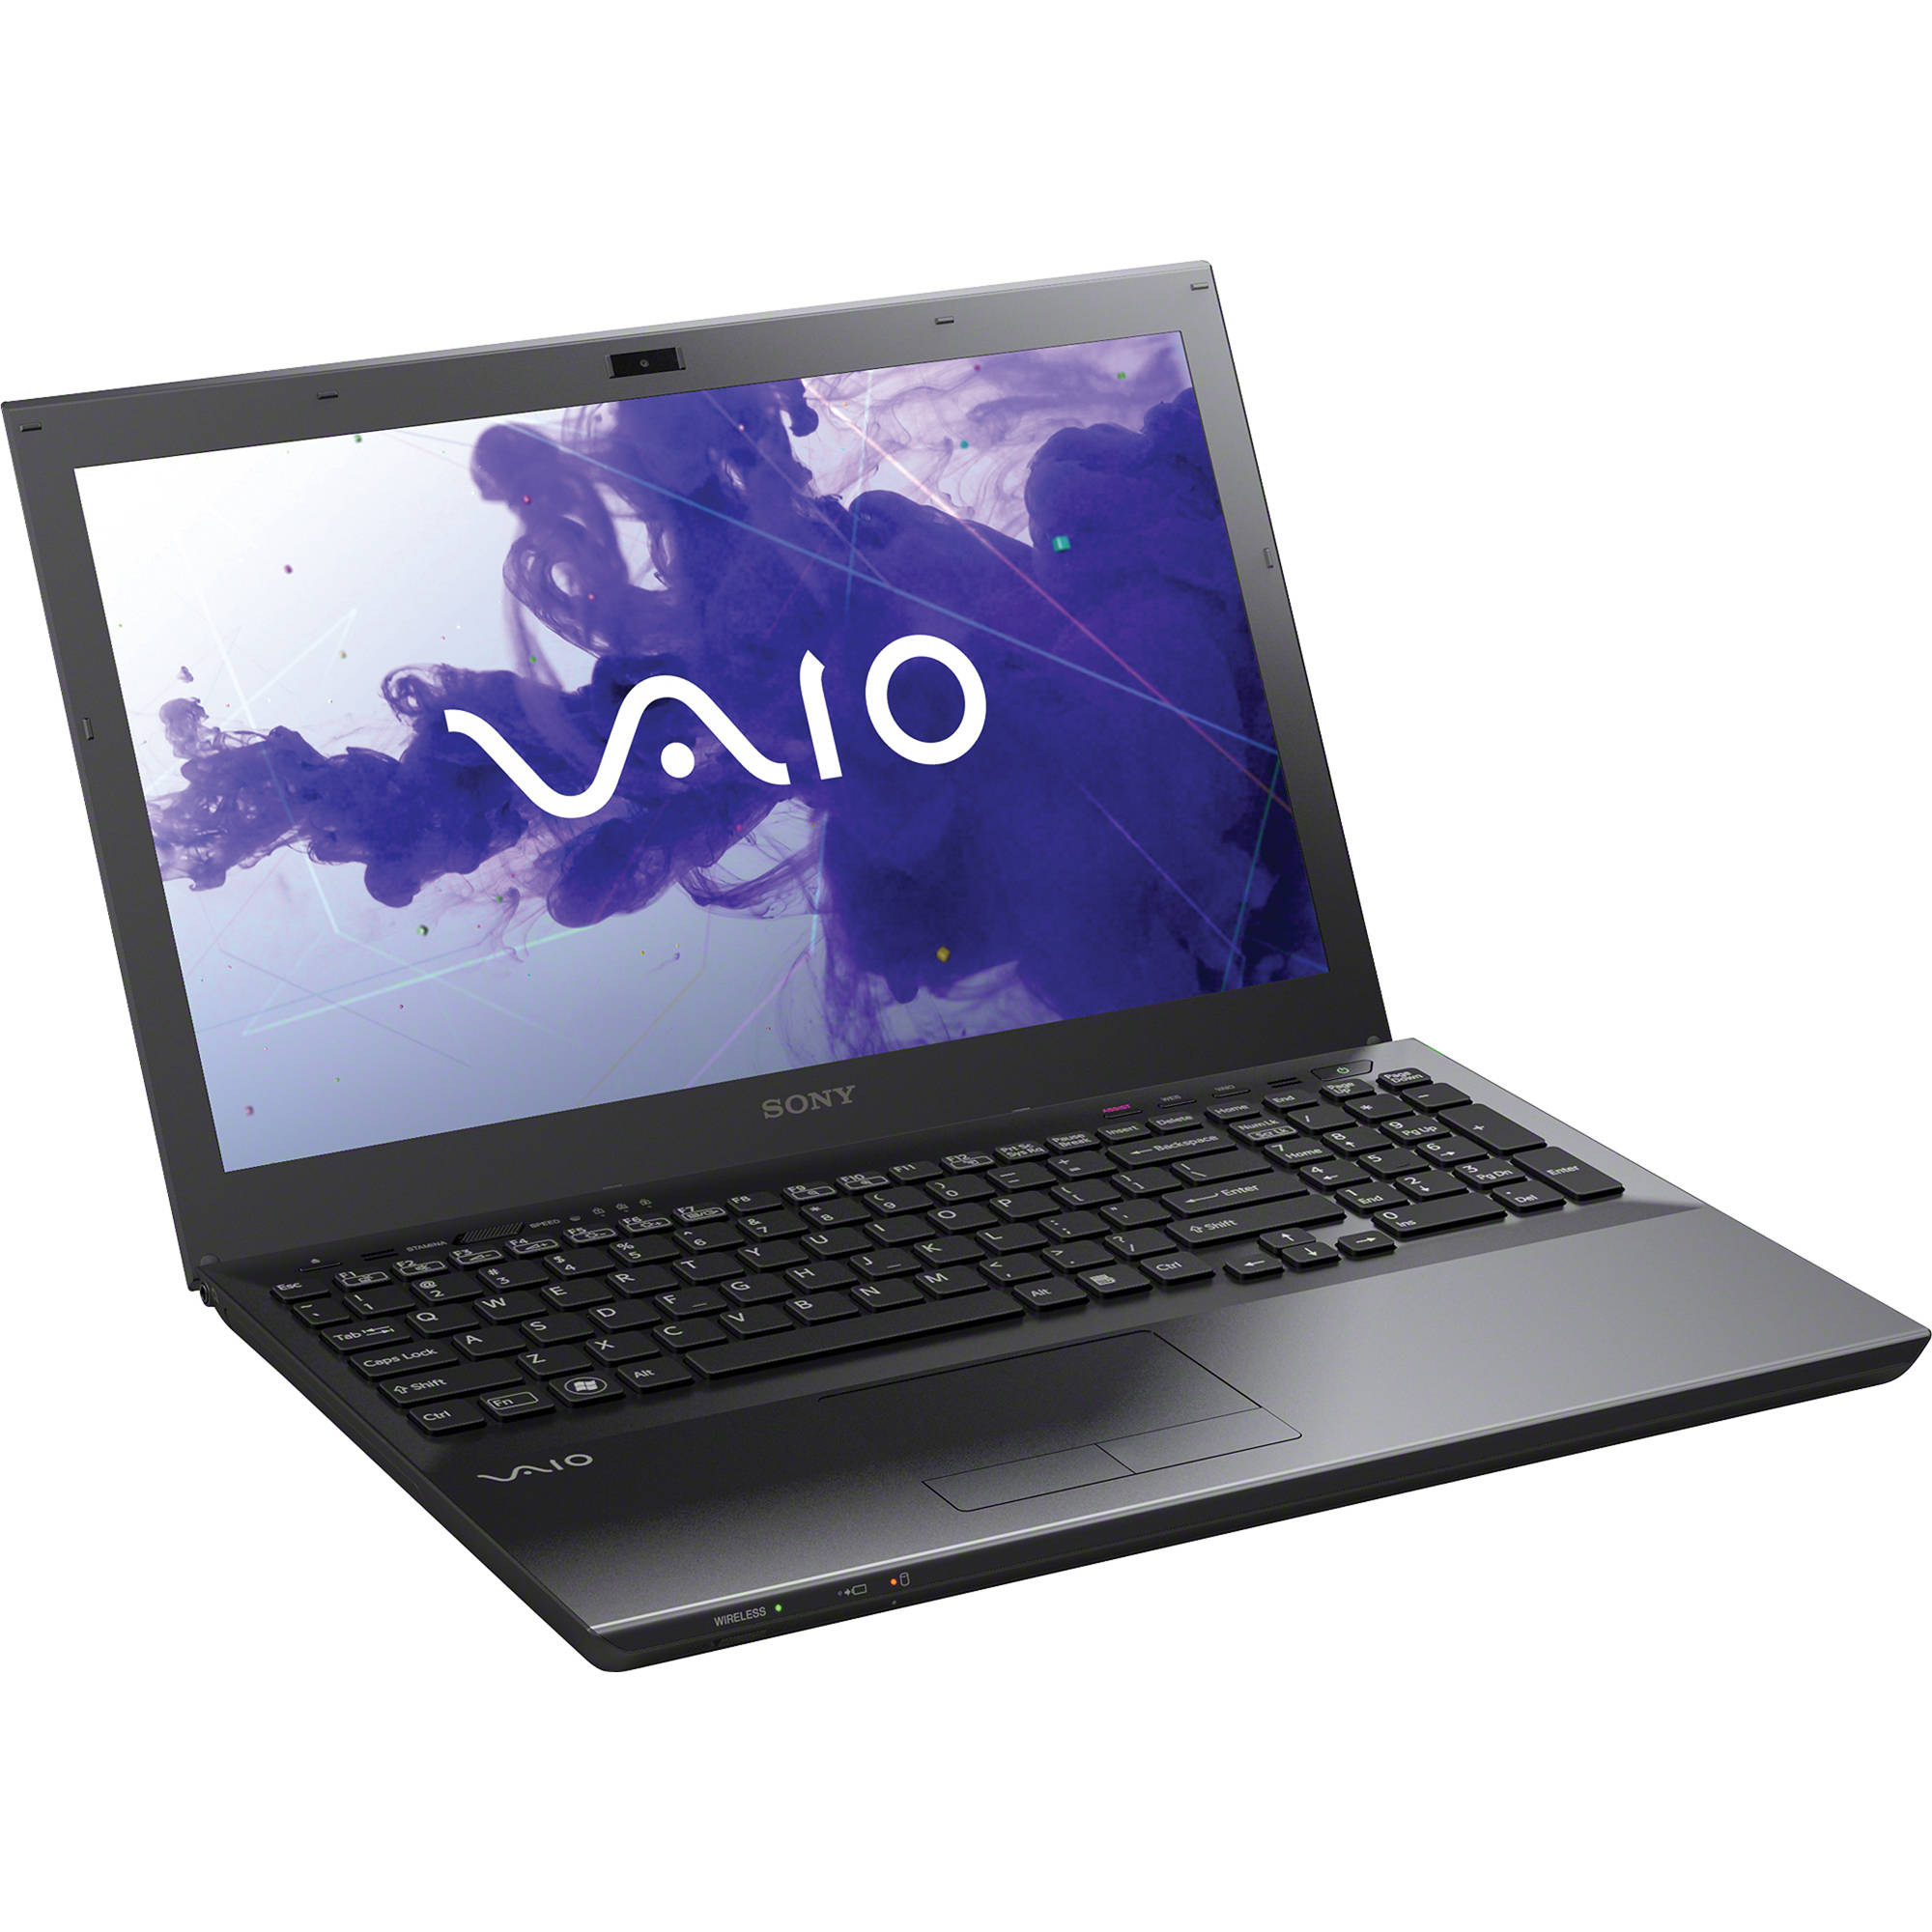 Sony Vaio VPCSE27FX Ricoh Camera Download Driver